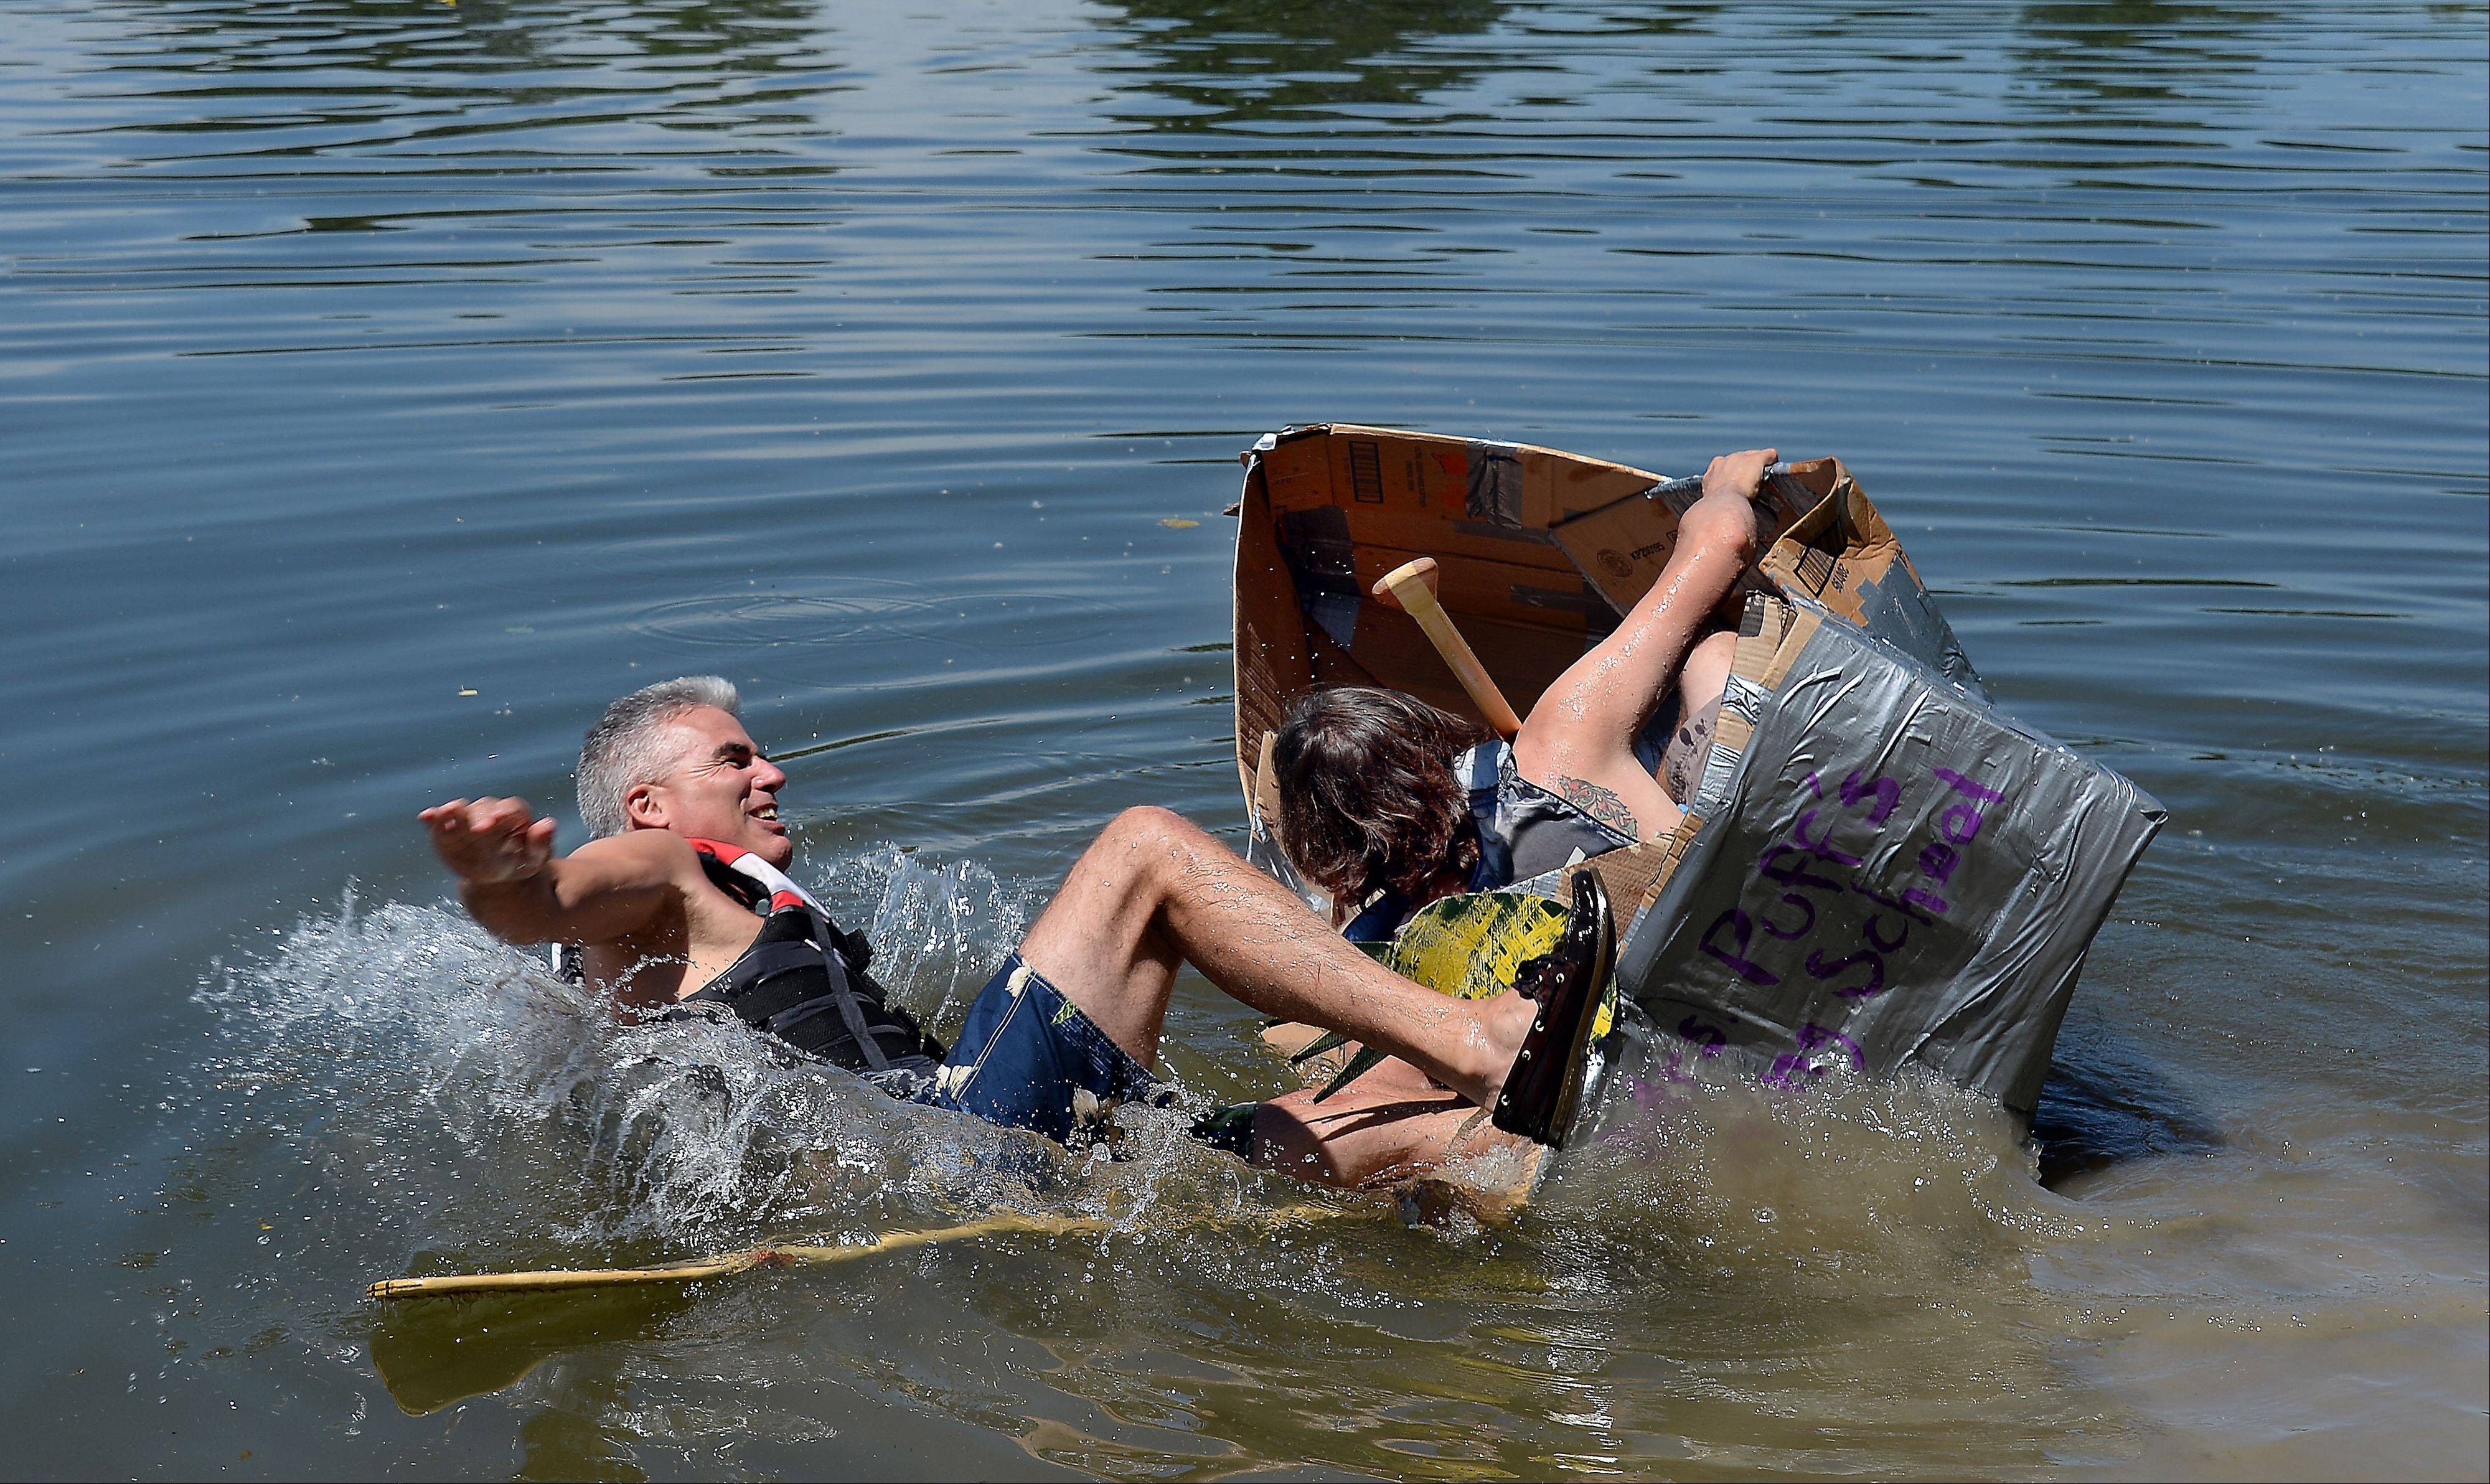 Lasting only 30 seconds before their boat capsized, Mike Flatley of Lake Villa hits the water, followed in short order by his son, Patrick Flatley of Antioch.